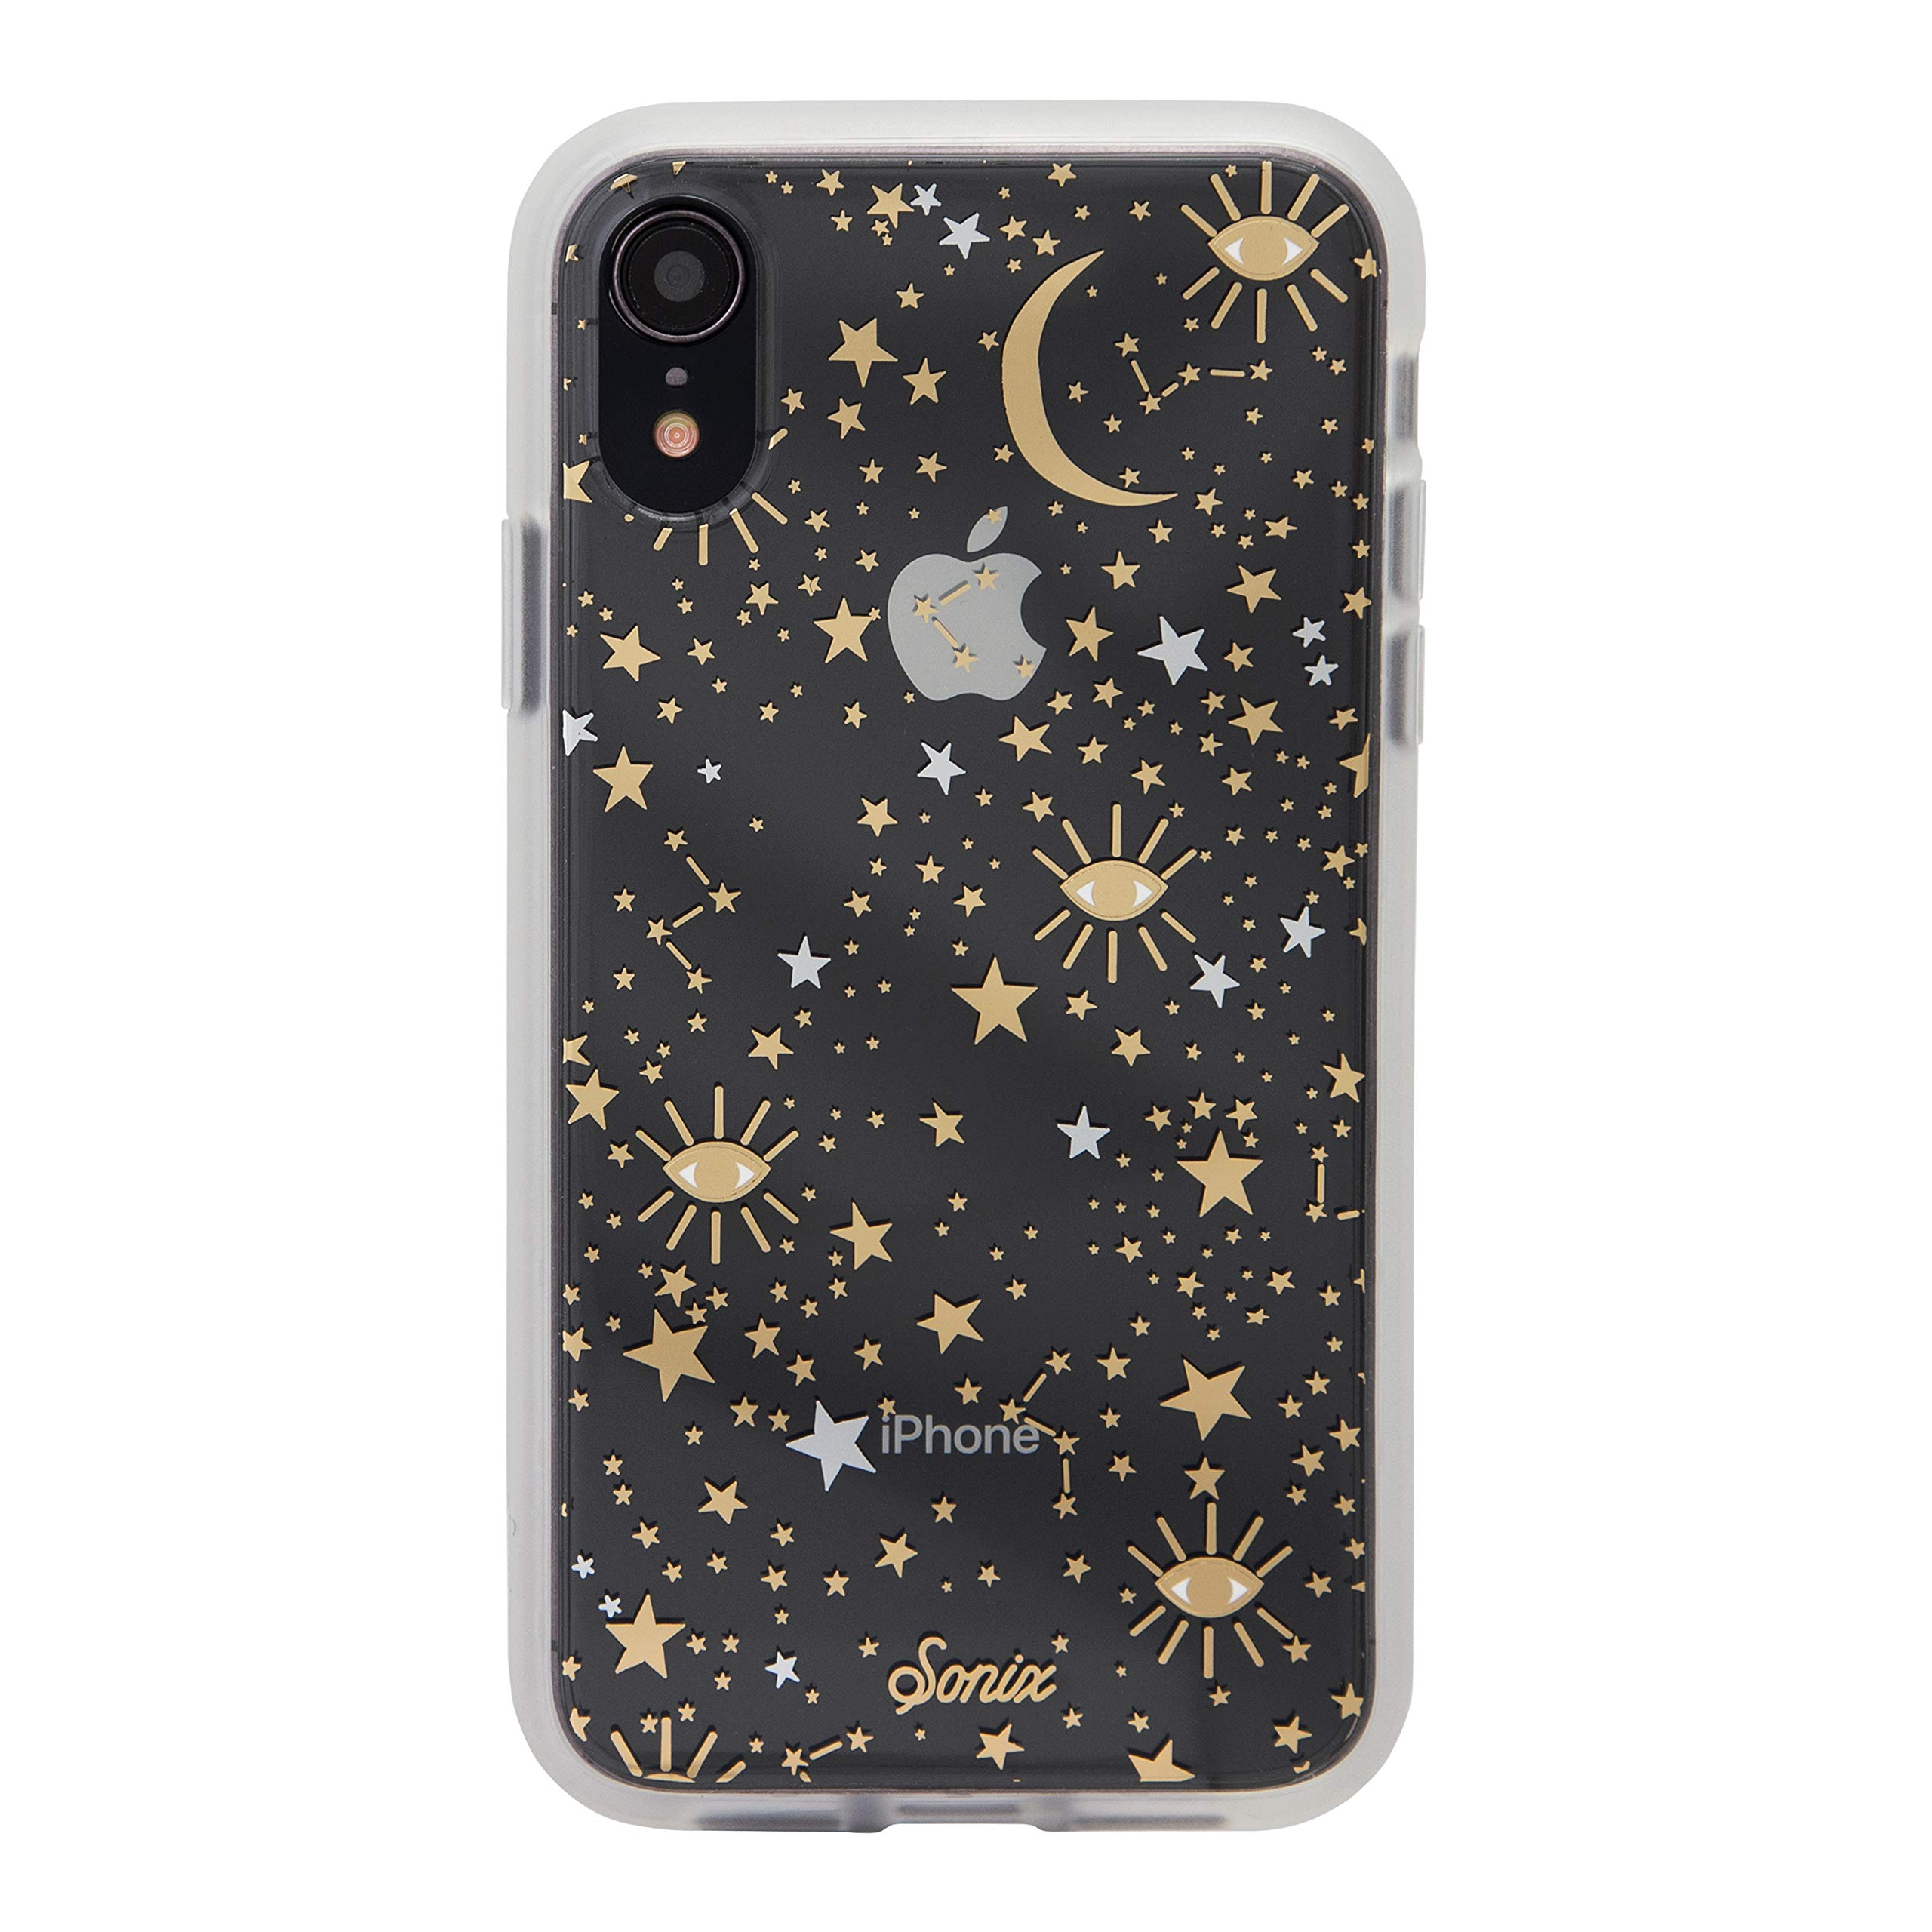 Sonix Cosmic Stars Case for iPhone XR [Military Drop Test Certified] Protective Gold Silver Star Clear Case for iPhone XR by Sonix